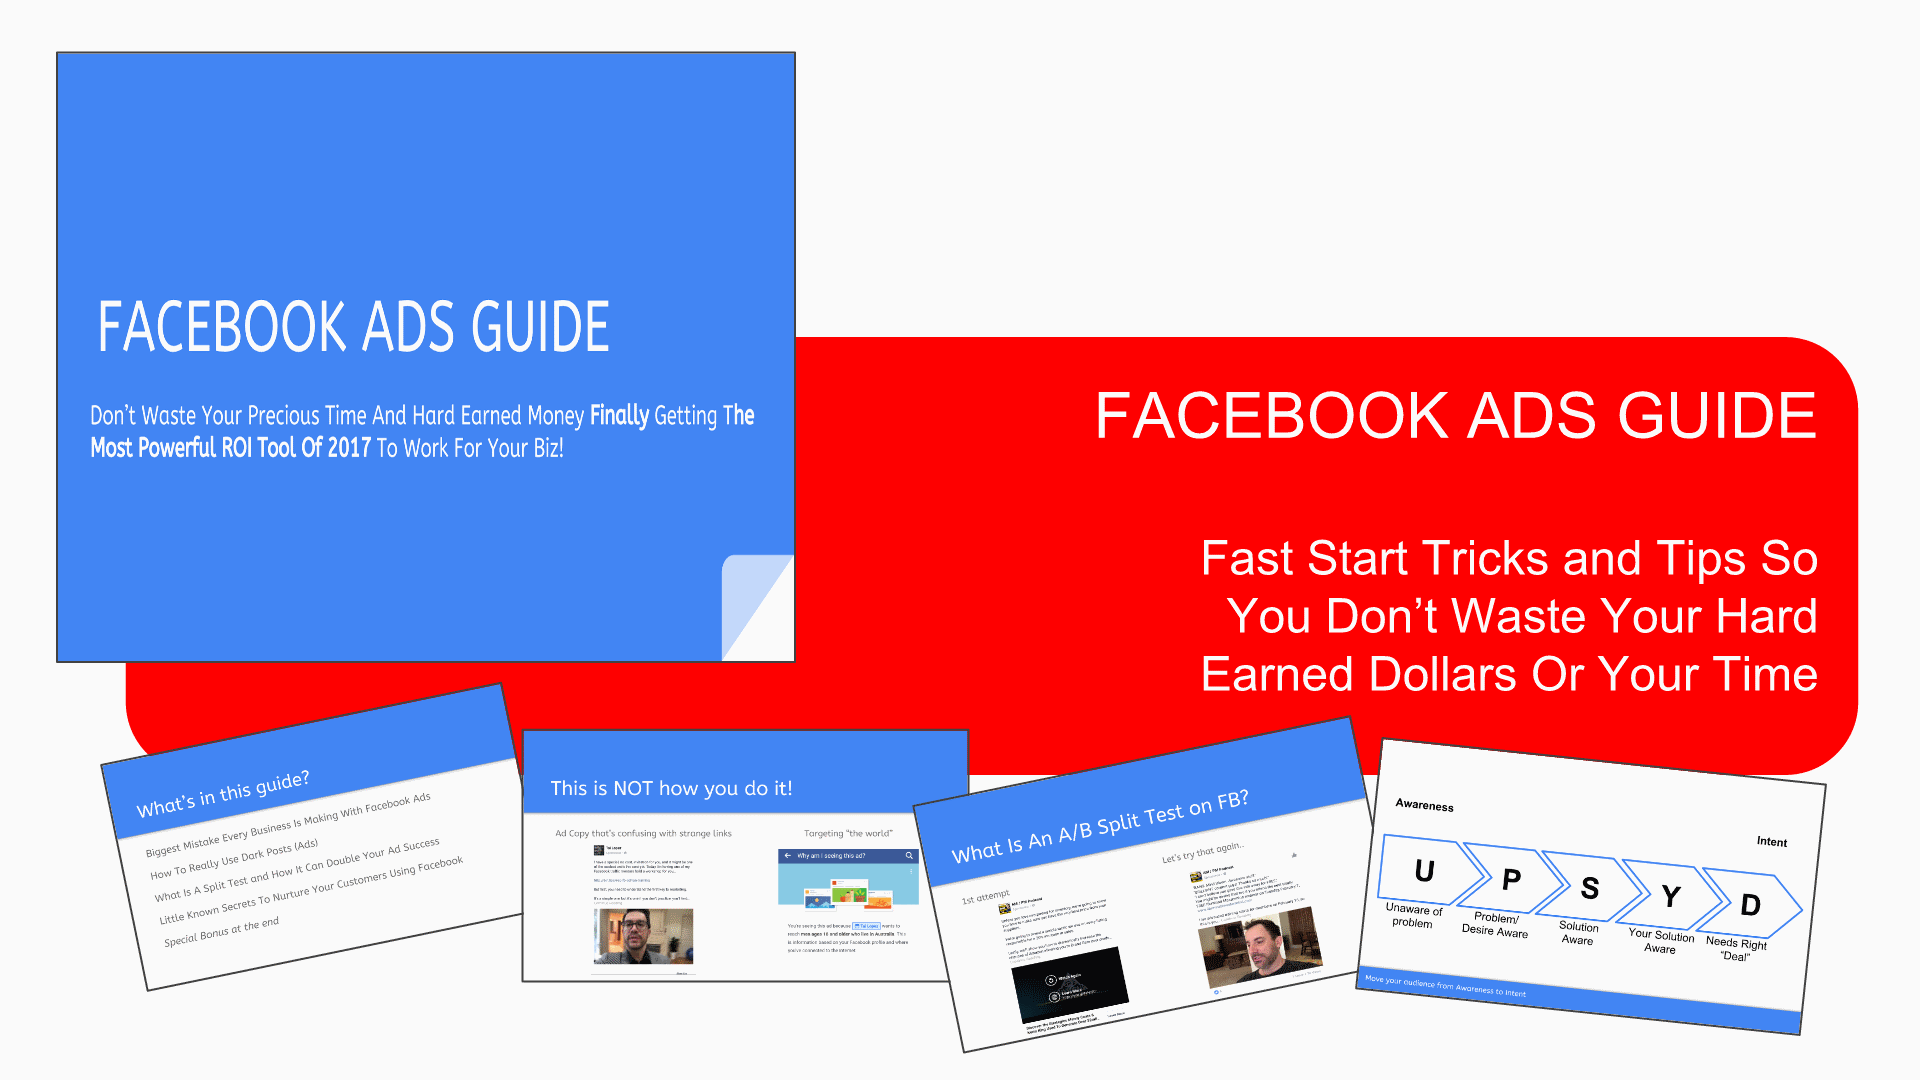 Rapid Facebook Ads Guide and Service Done For You